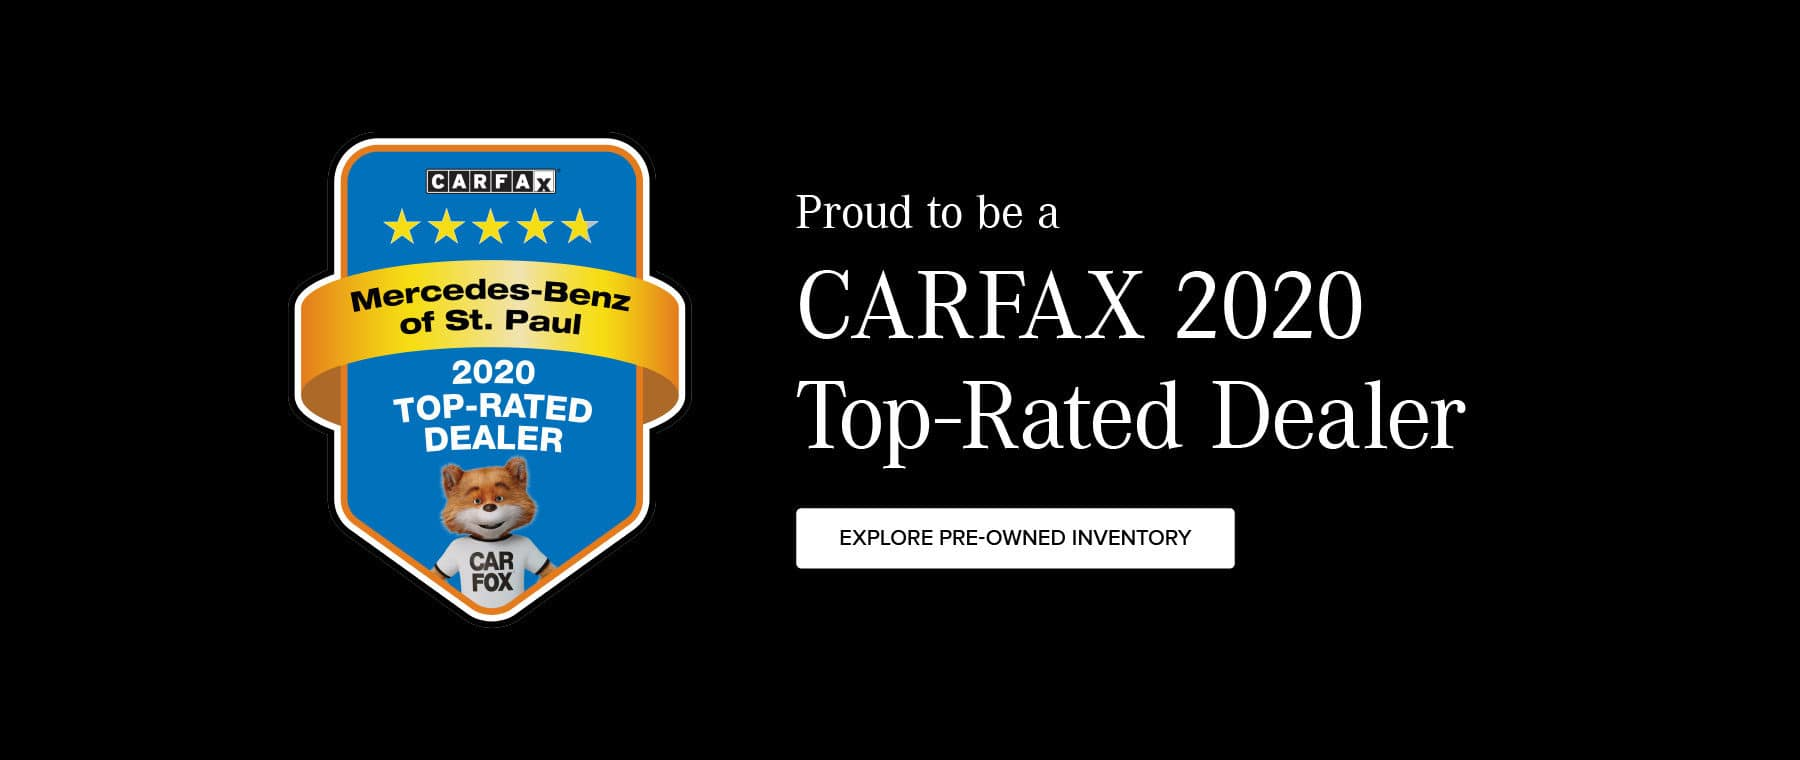 Proud to be a CarFax 2020 Top-Rated Dealer.